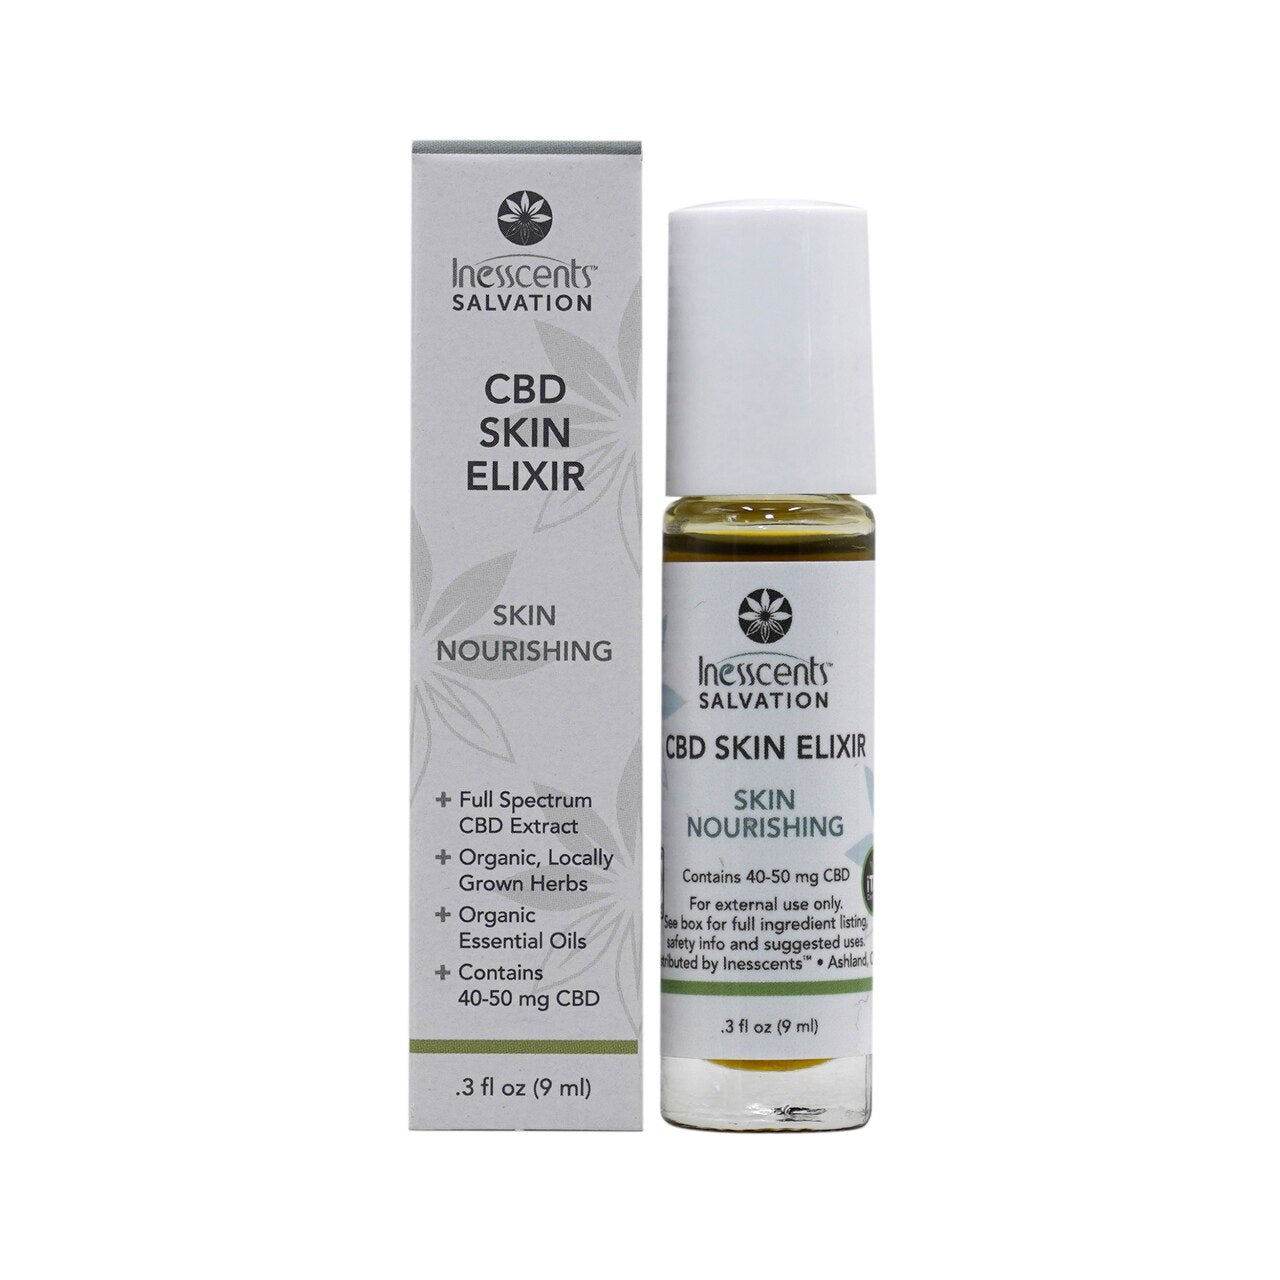 CBD Salvation - Skin Nourishing Skin Elixir 9ml Roll-On